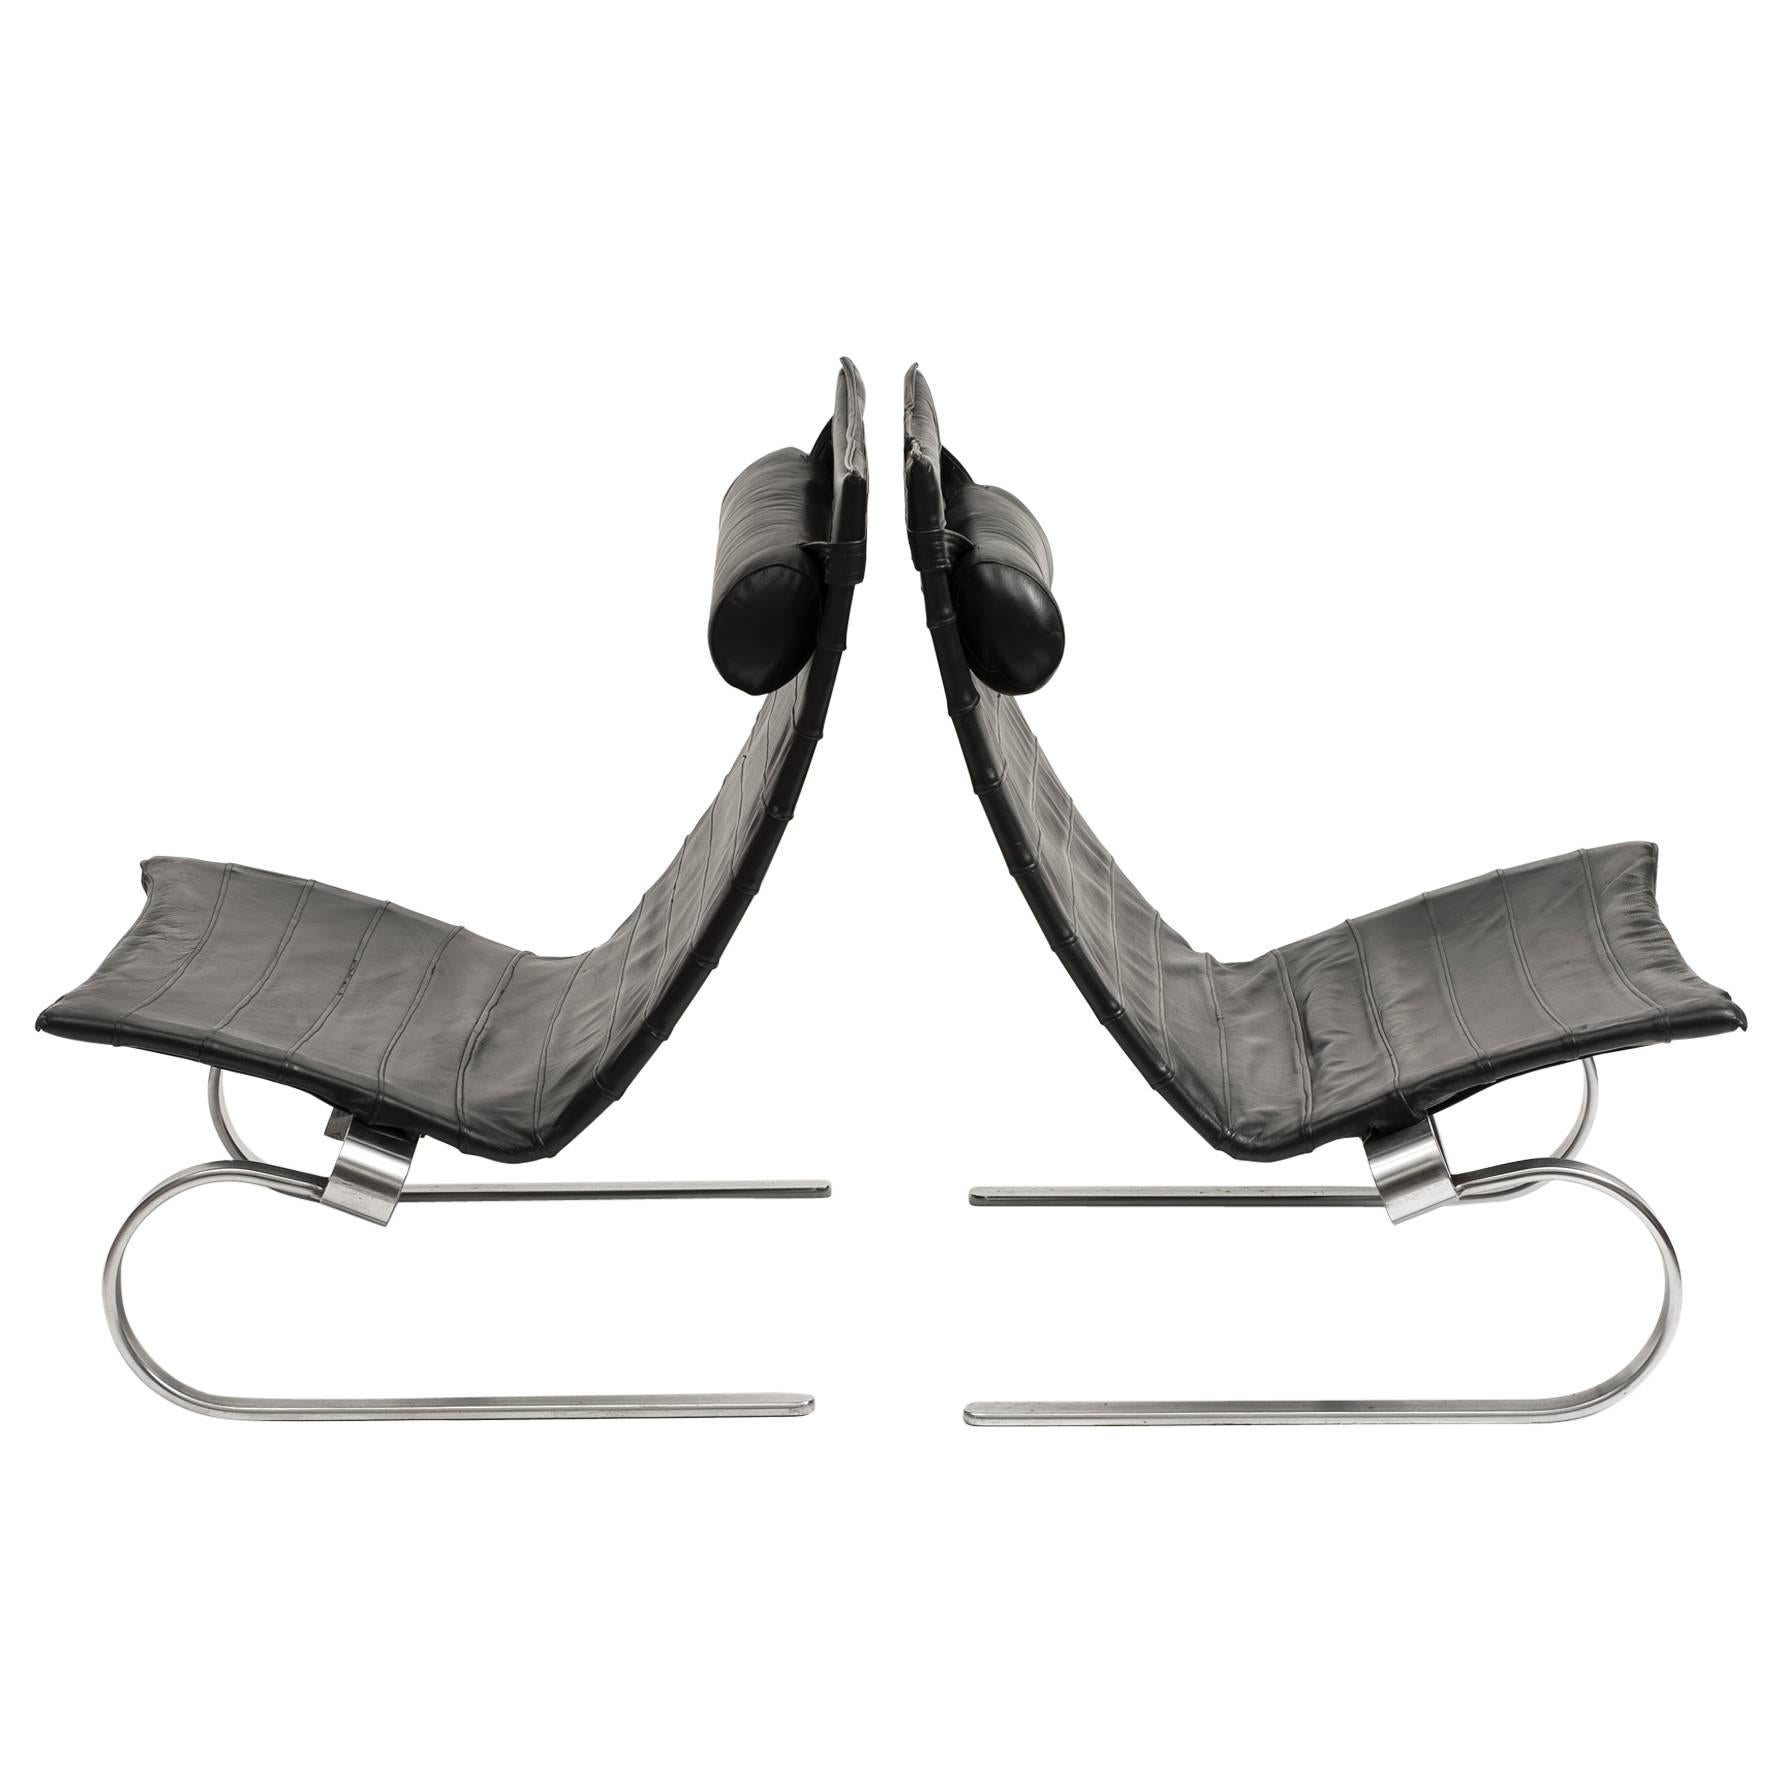 Pair of PK20 Lounge Chairs by Poul Kjærholm in Black Leather, 1980s